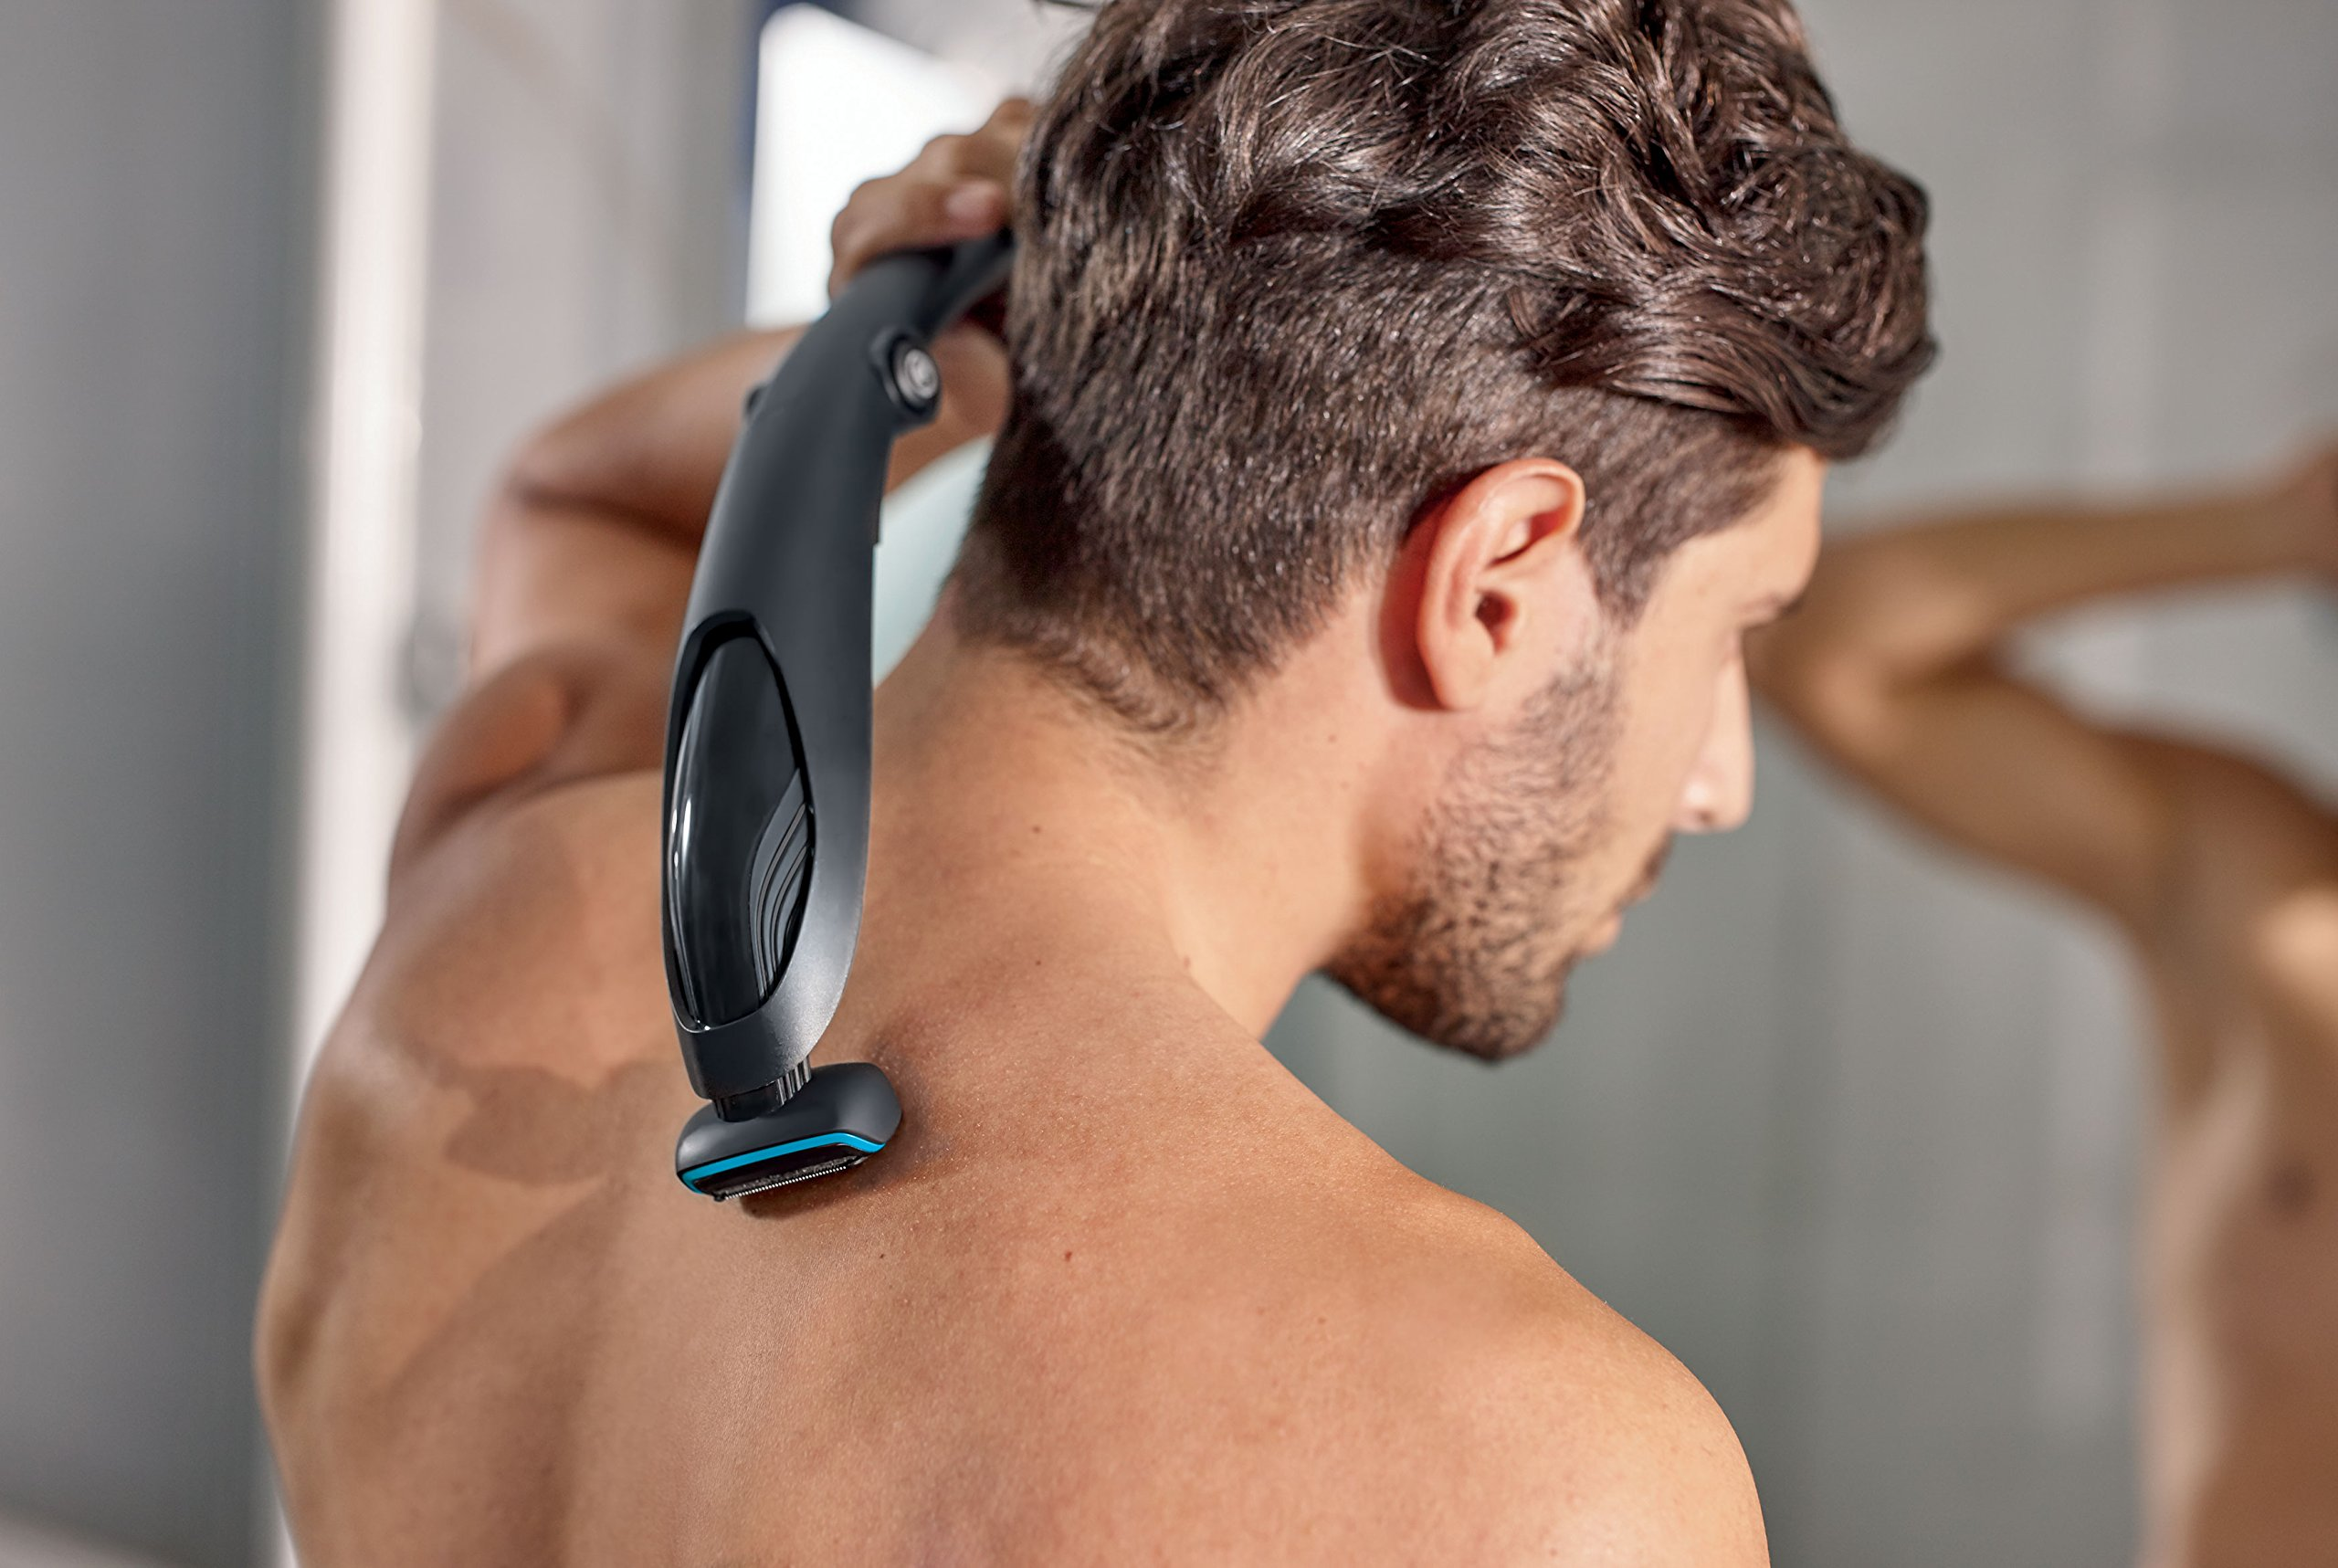 Philips Series 5000 Body Groomer With Skin Comfort System And Back Attachment